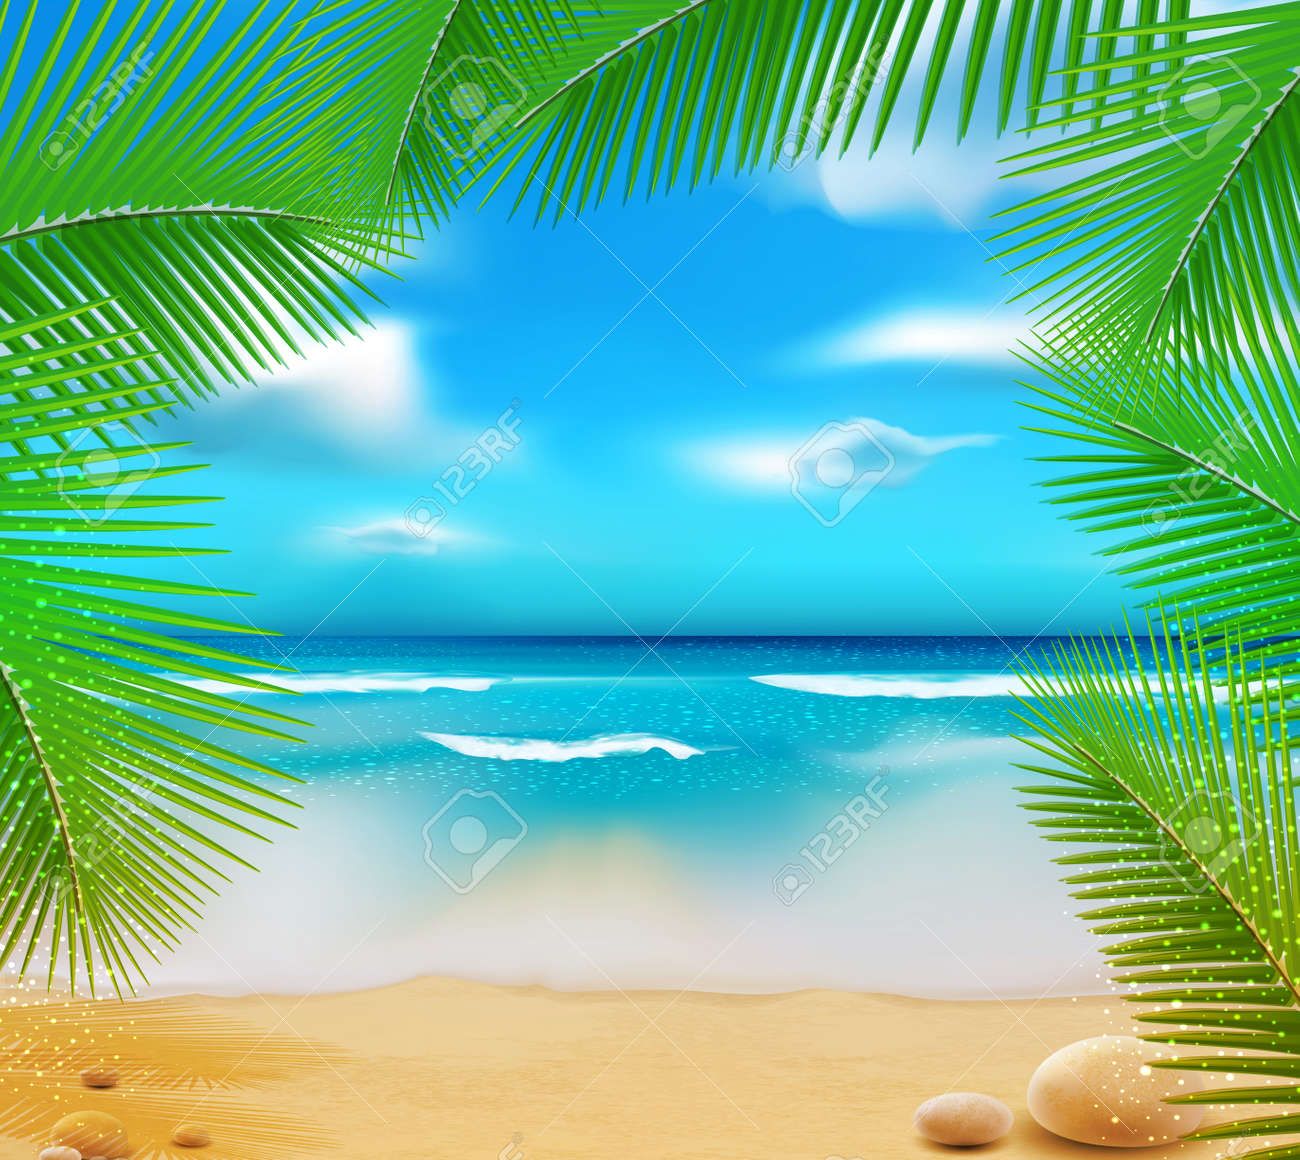 landscape with a sky-blue ocean, golden sands and palm trees - 12866897